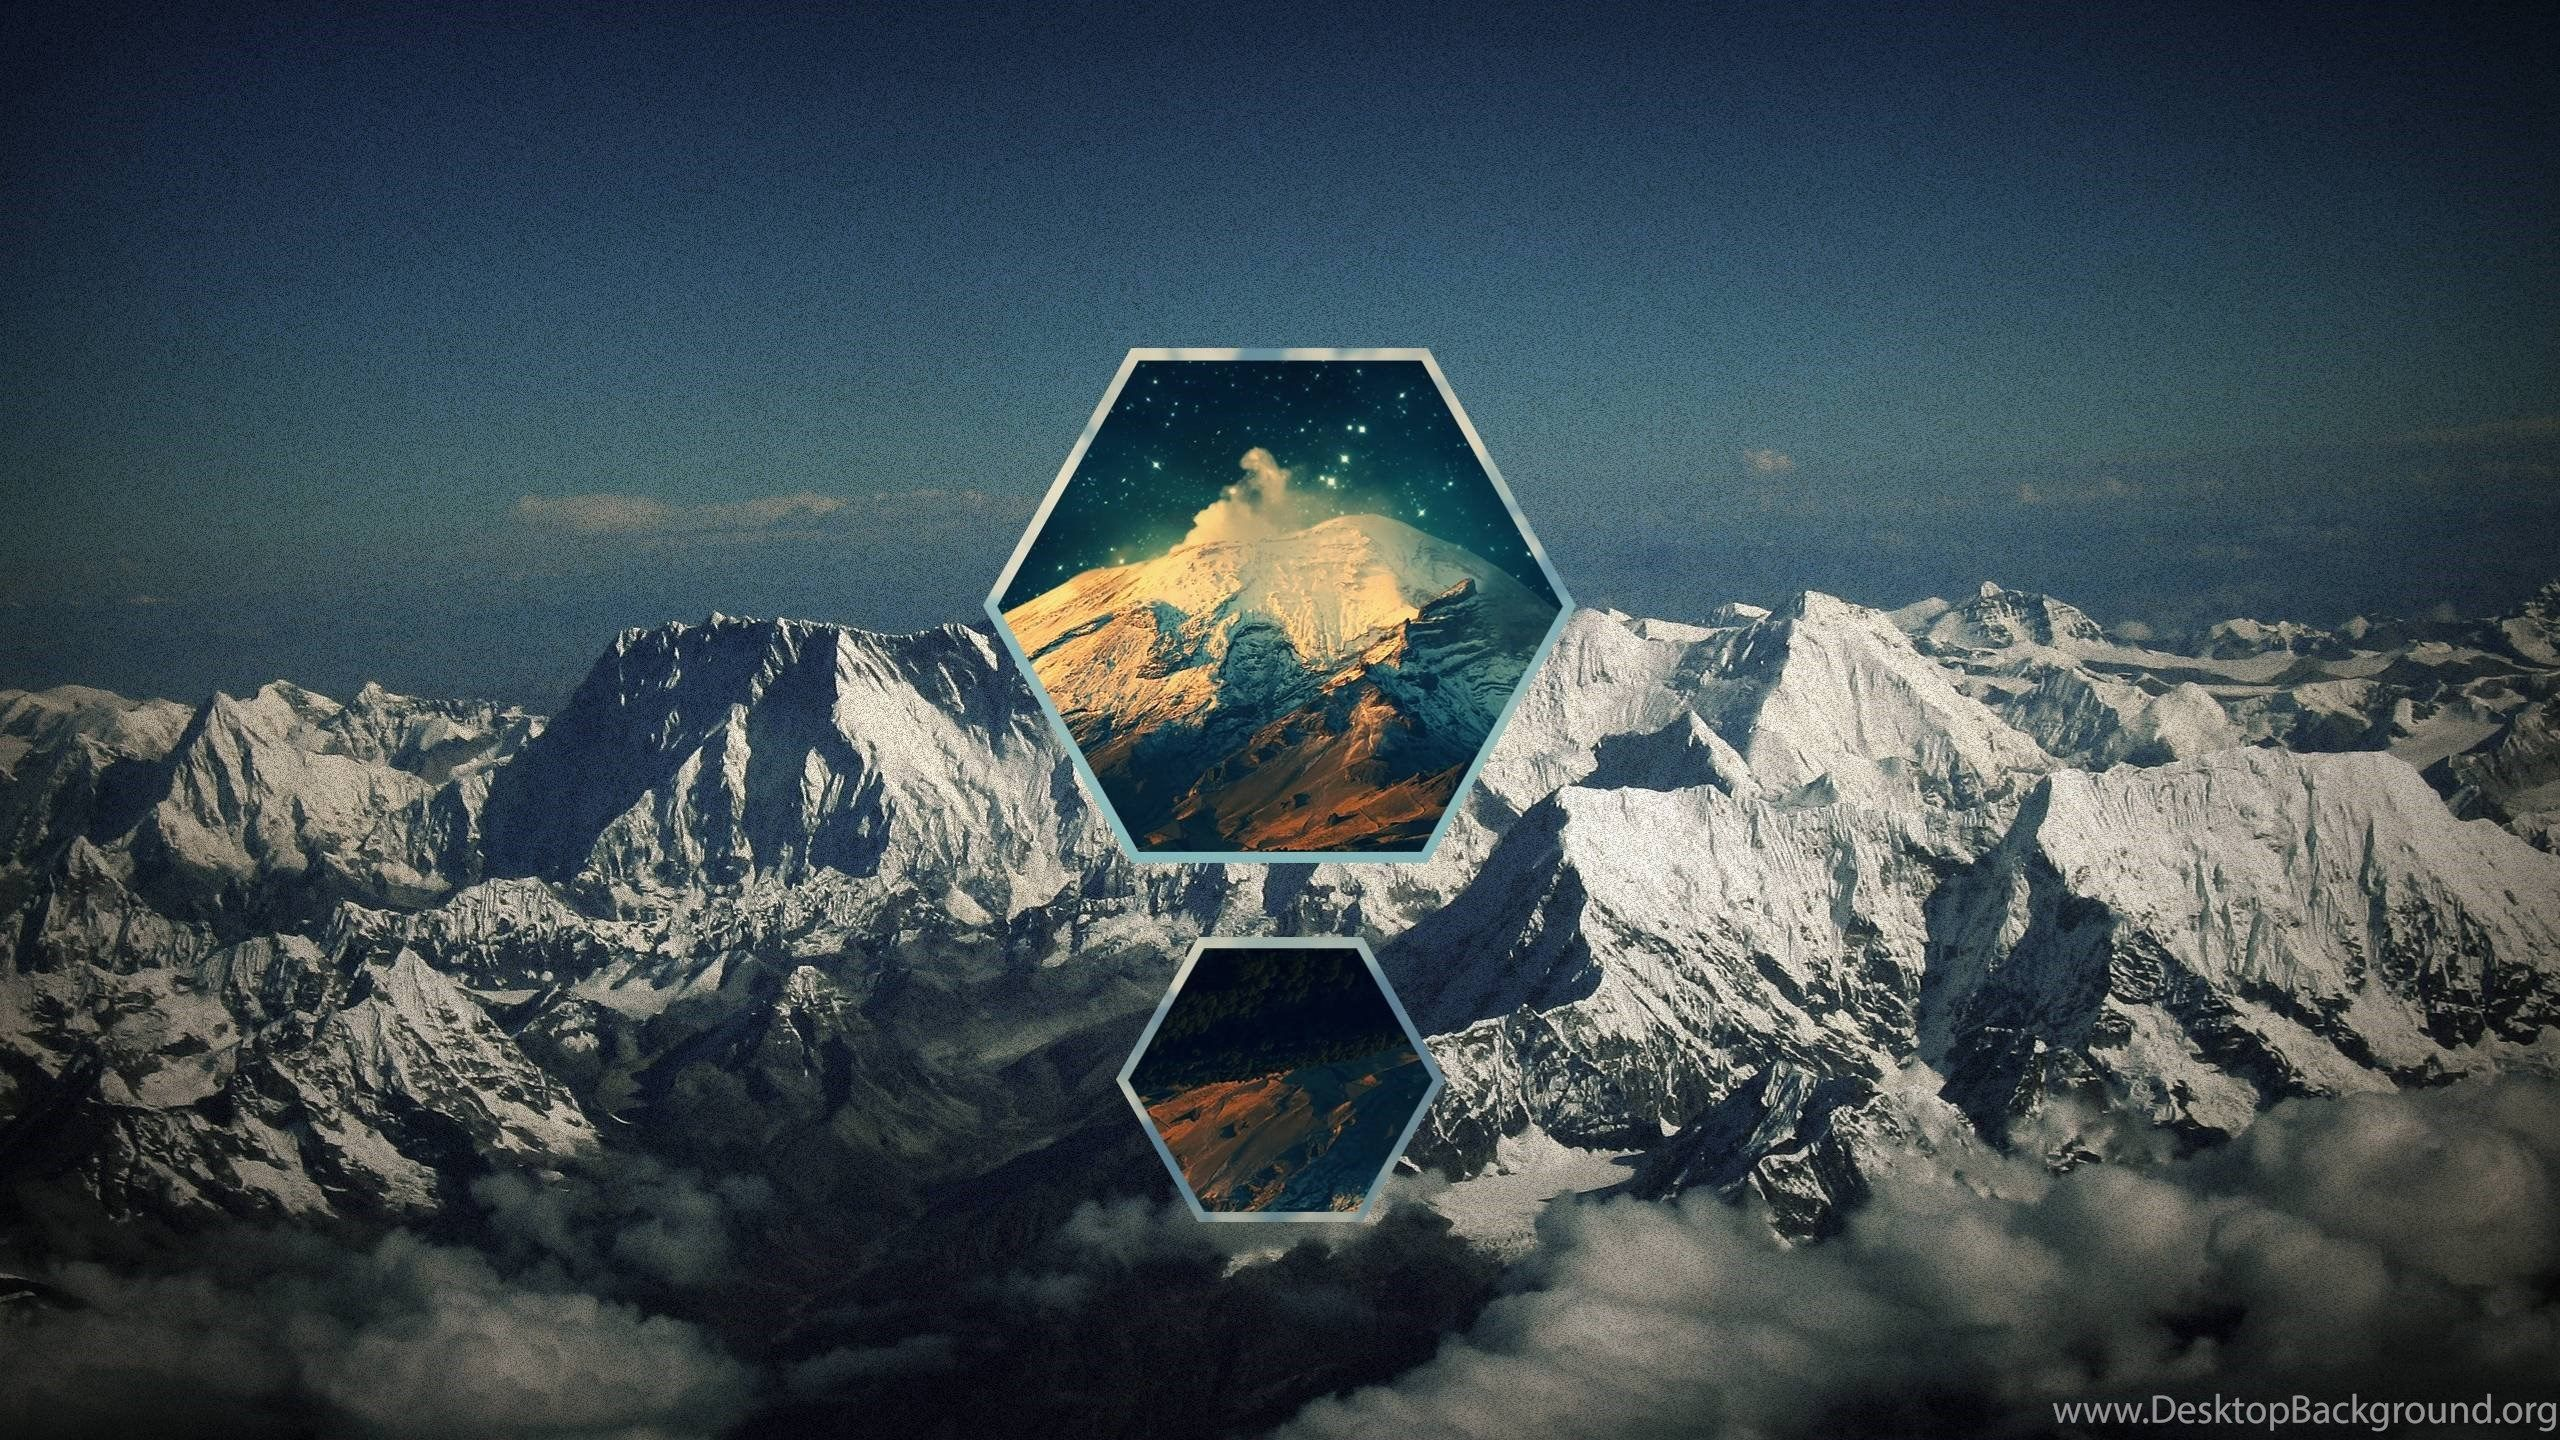 Geometric Landscape 4K Wallpapers - Top Free Geometric ...